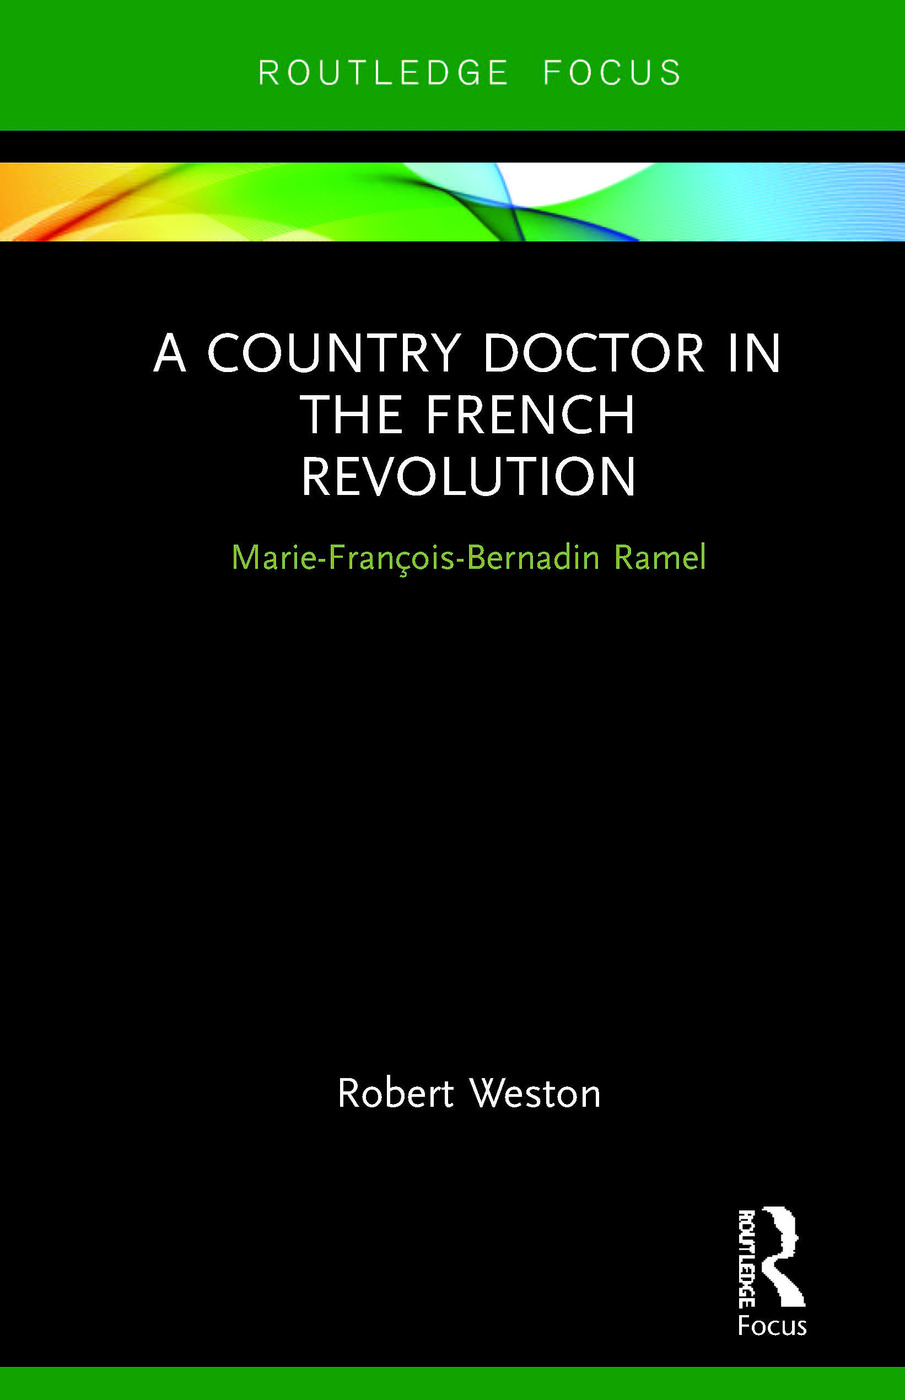 A Country Doctor in the French Revolution: Marie-François-Bernadin Ramel book cover